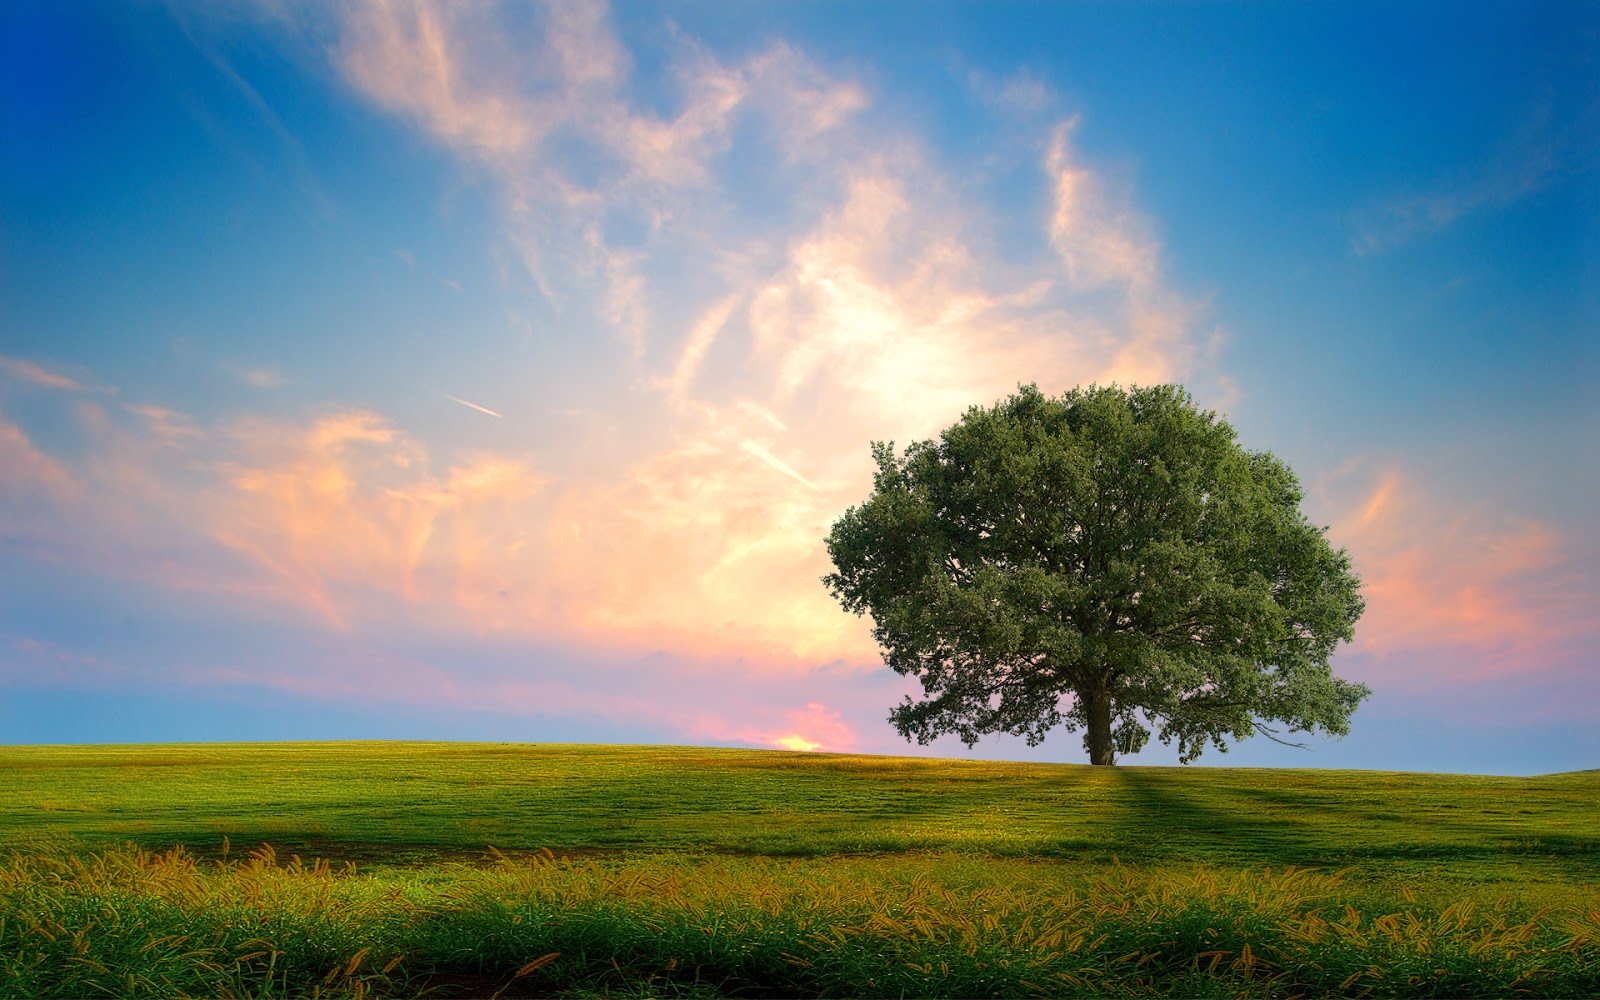 Afternoon A Beautiful Tree Wallpapers Hf Free Download Wallpaper Nature